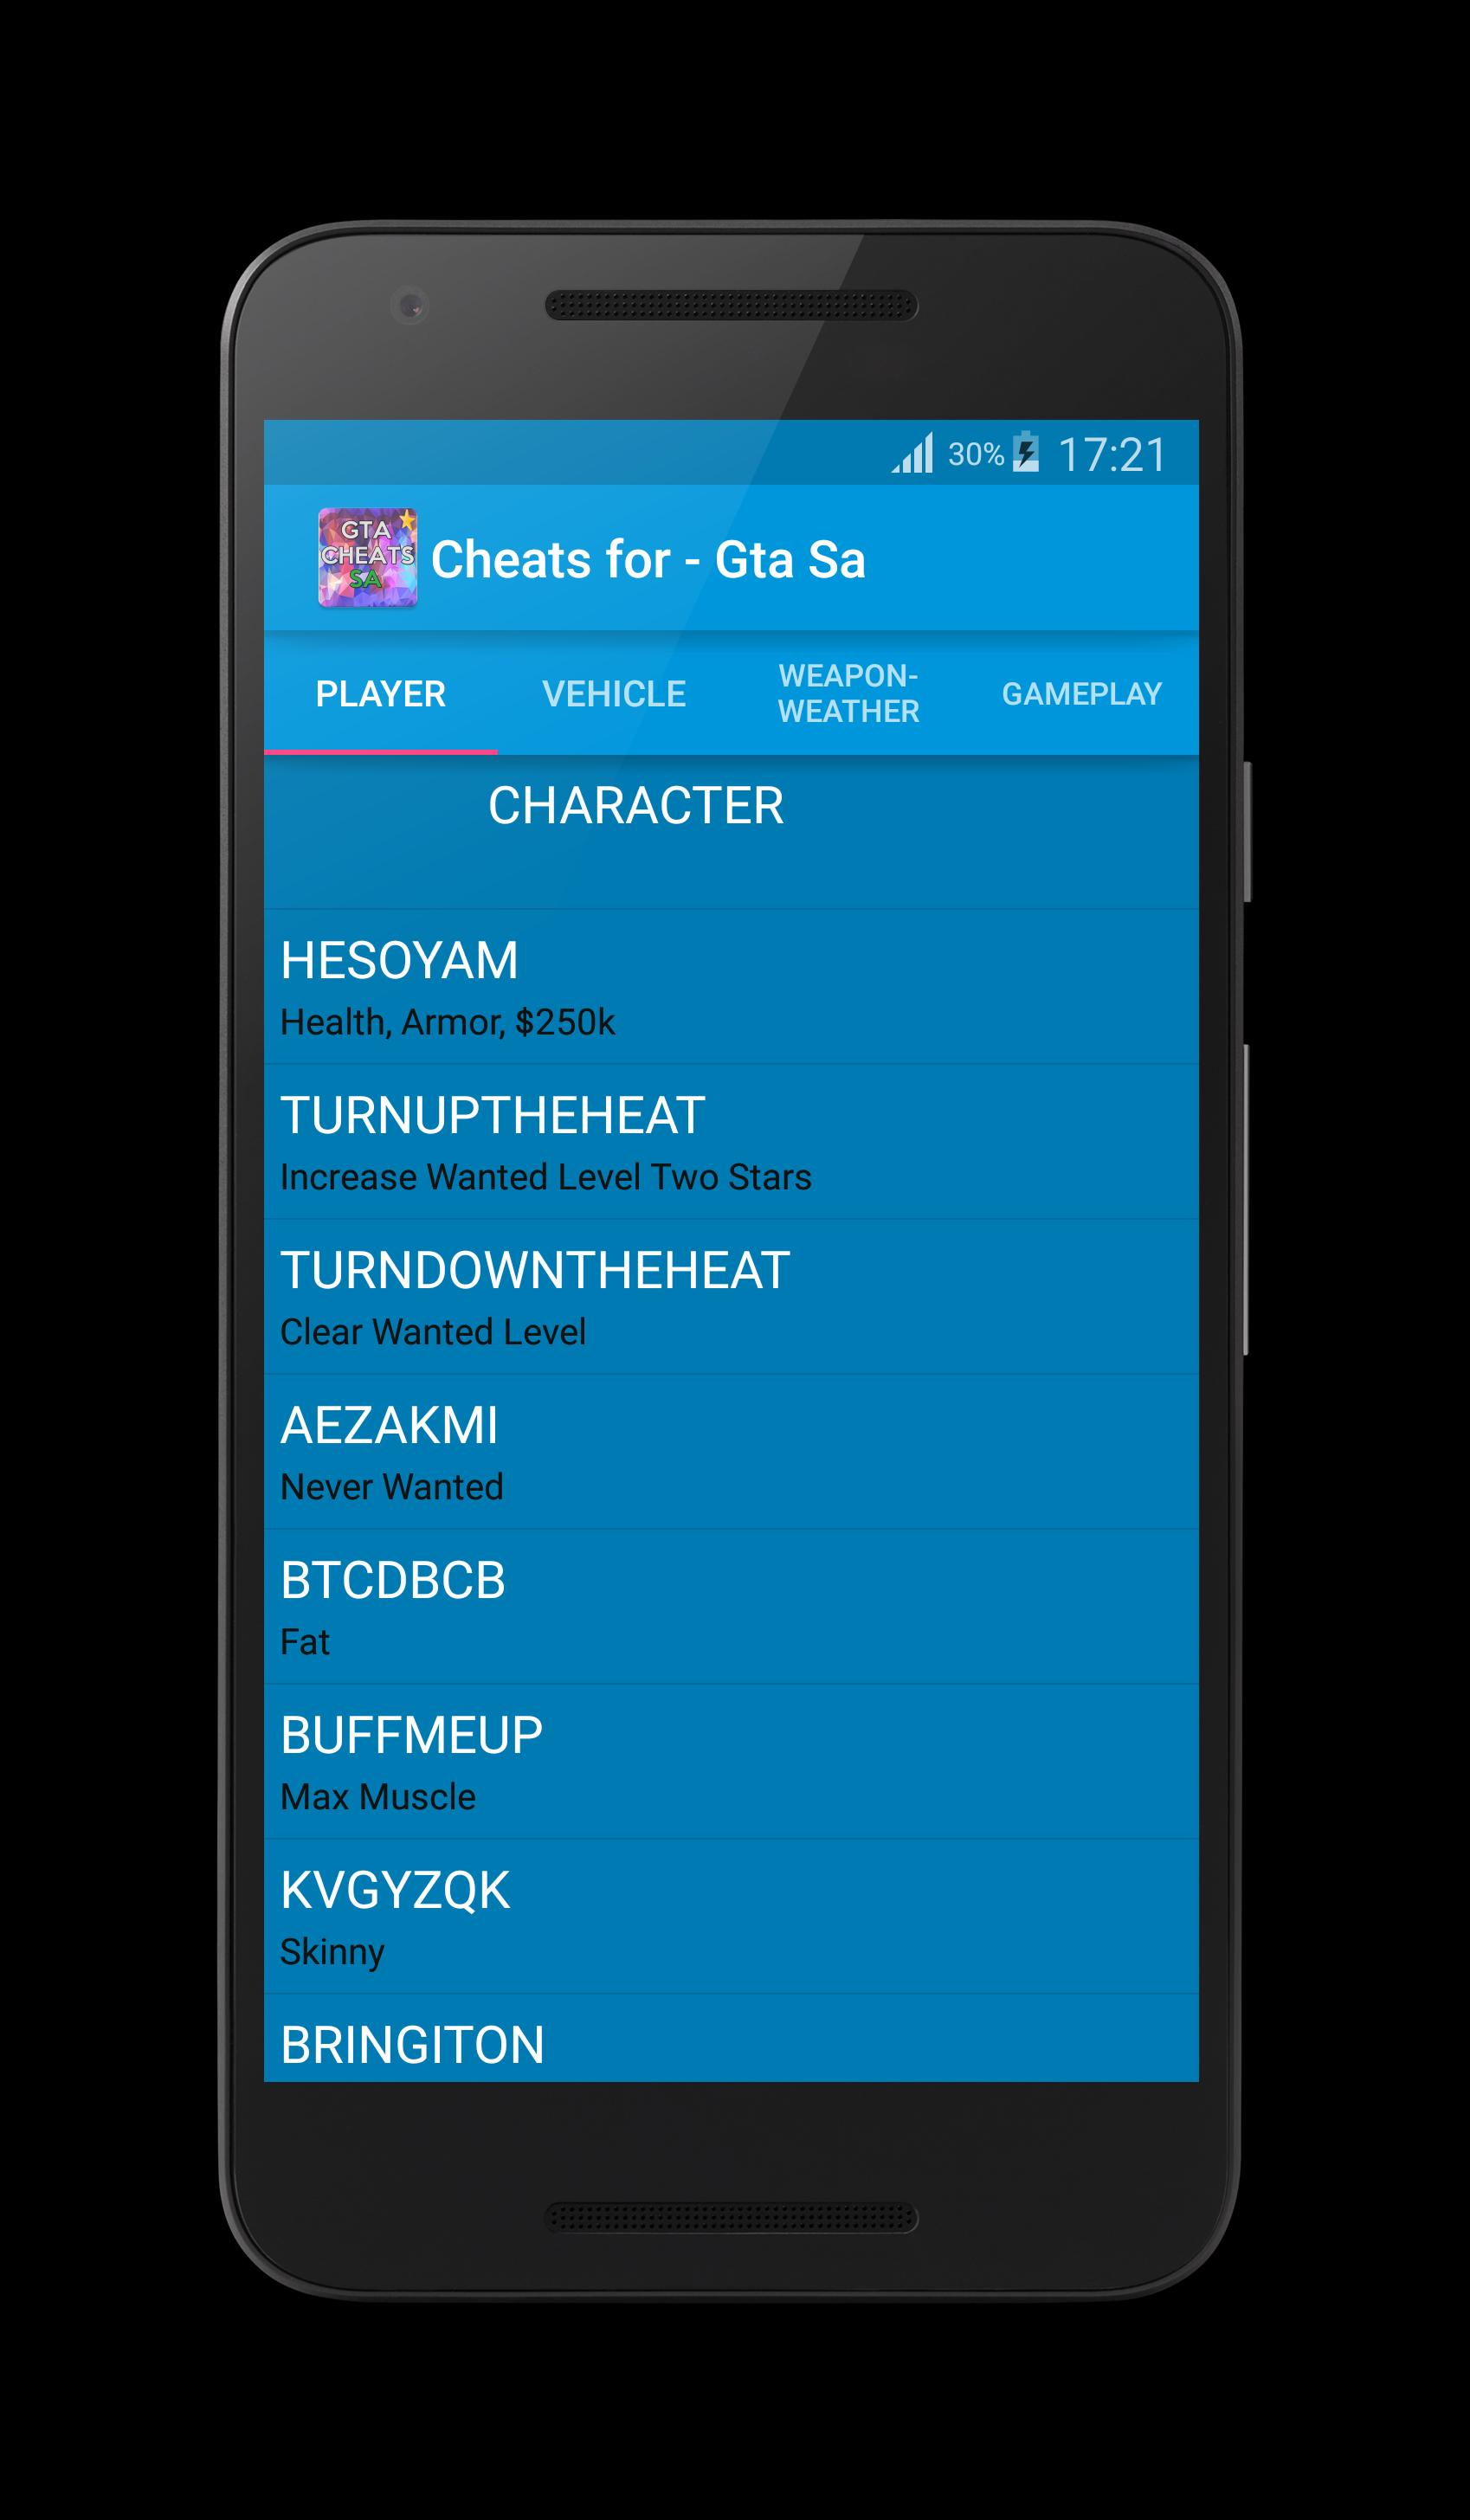 Cheat for Gta San Andreas Plus for Android - APK Download